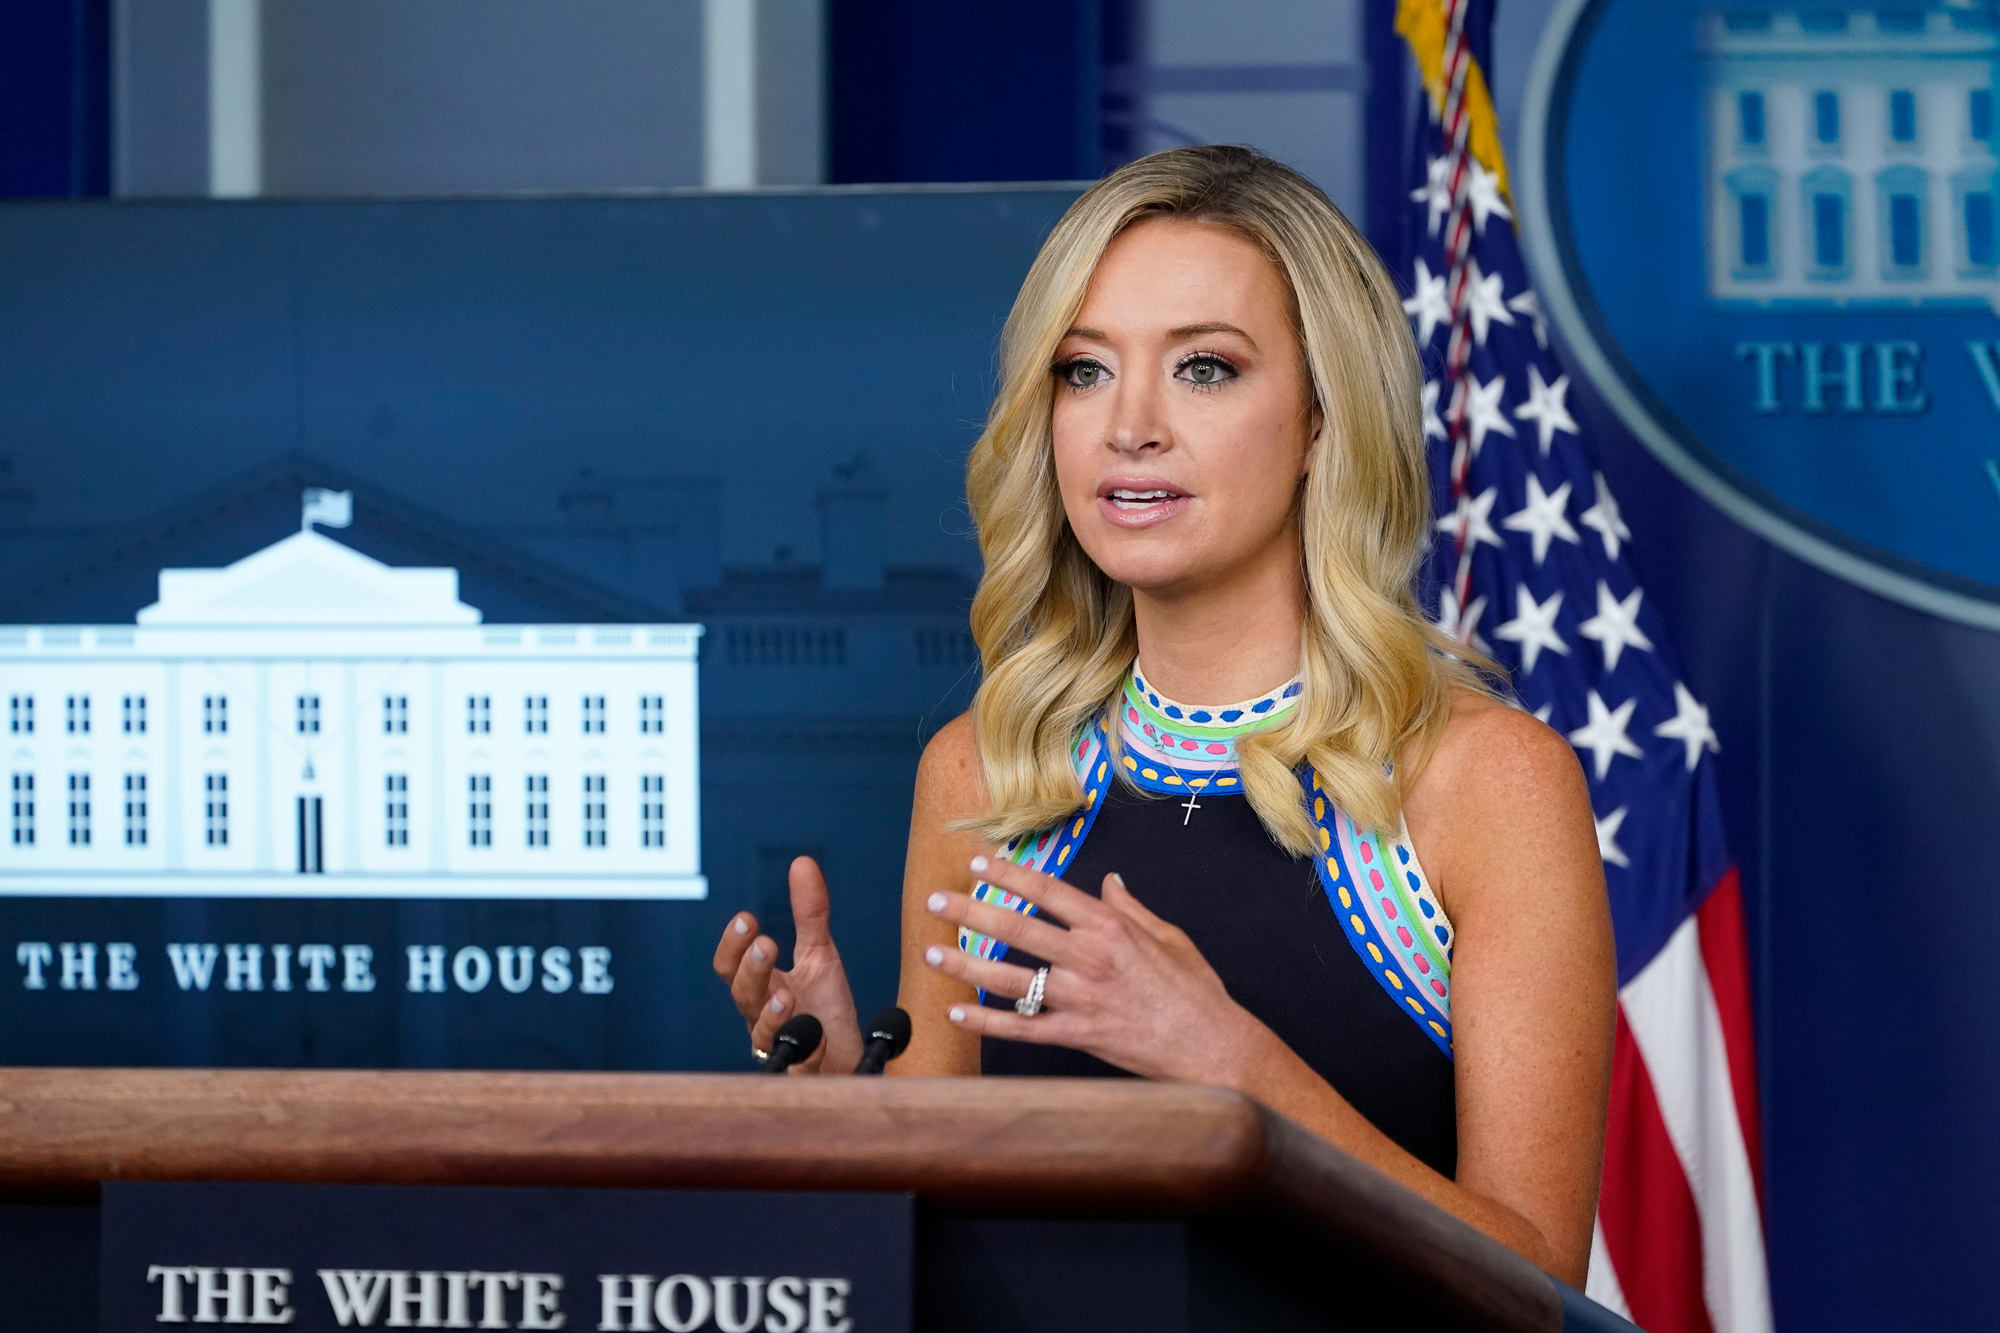 White House press secretary Kayleigh McEnany speaks during a news conference at the White House on September 24 in Washington, DC.